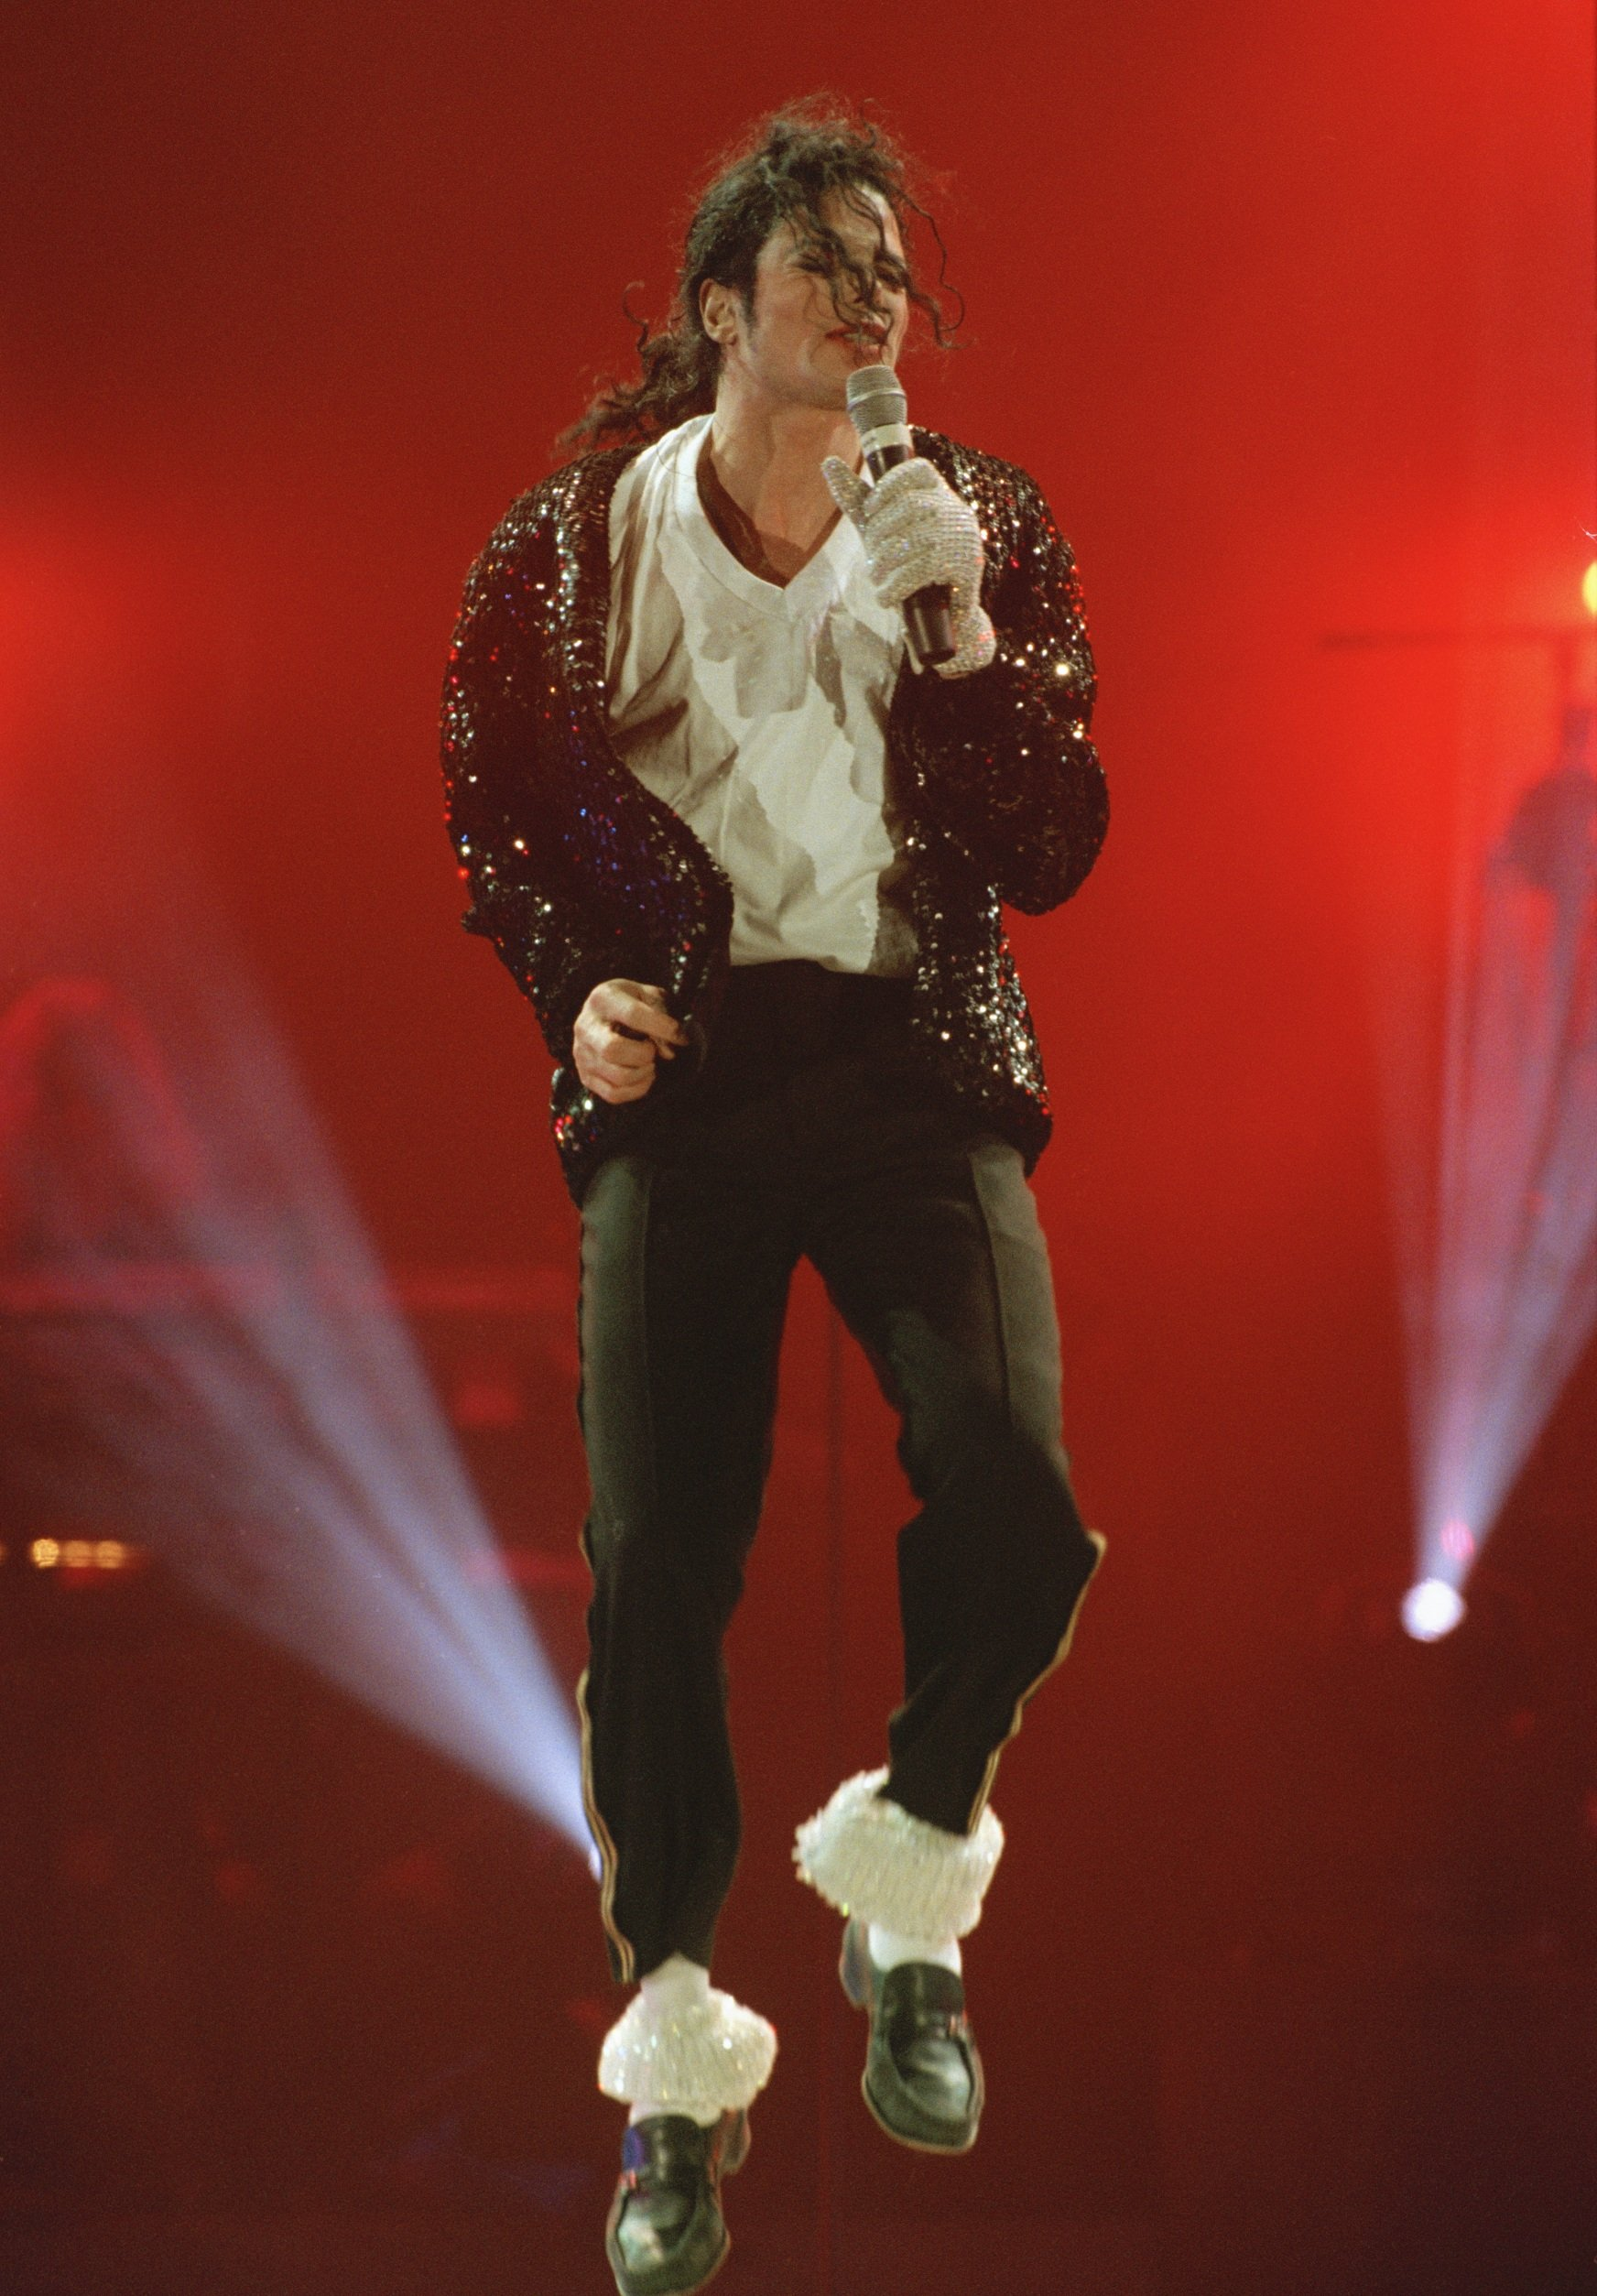 Michael Jackson in concert in Bremen during the HIStory World Tour in 1997. | Photo: Getty Images